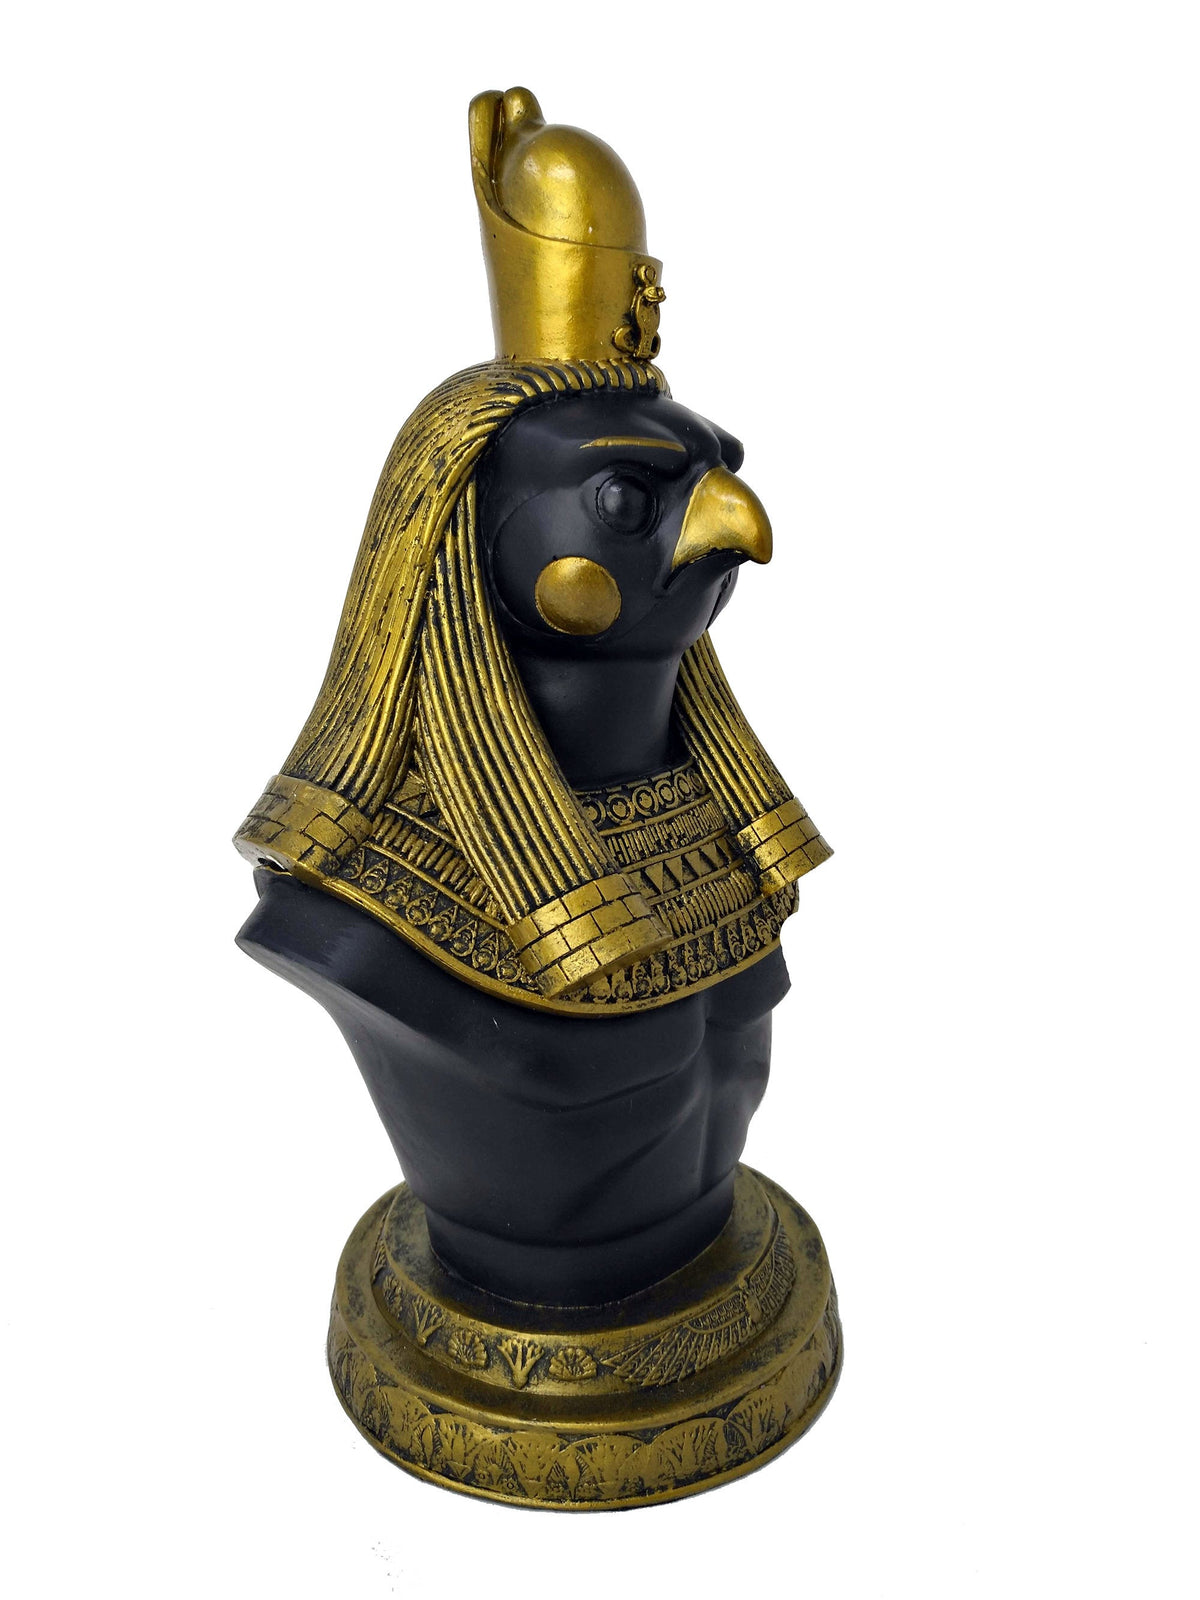 Large Horus Statue Box - Ancient Egyptian God Horus with Statue Trinket Box - Egyptian Home Decor - 10.6 inches / 27cm